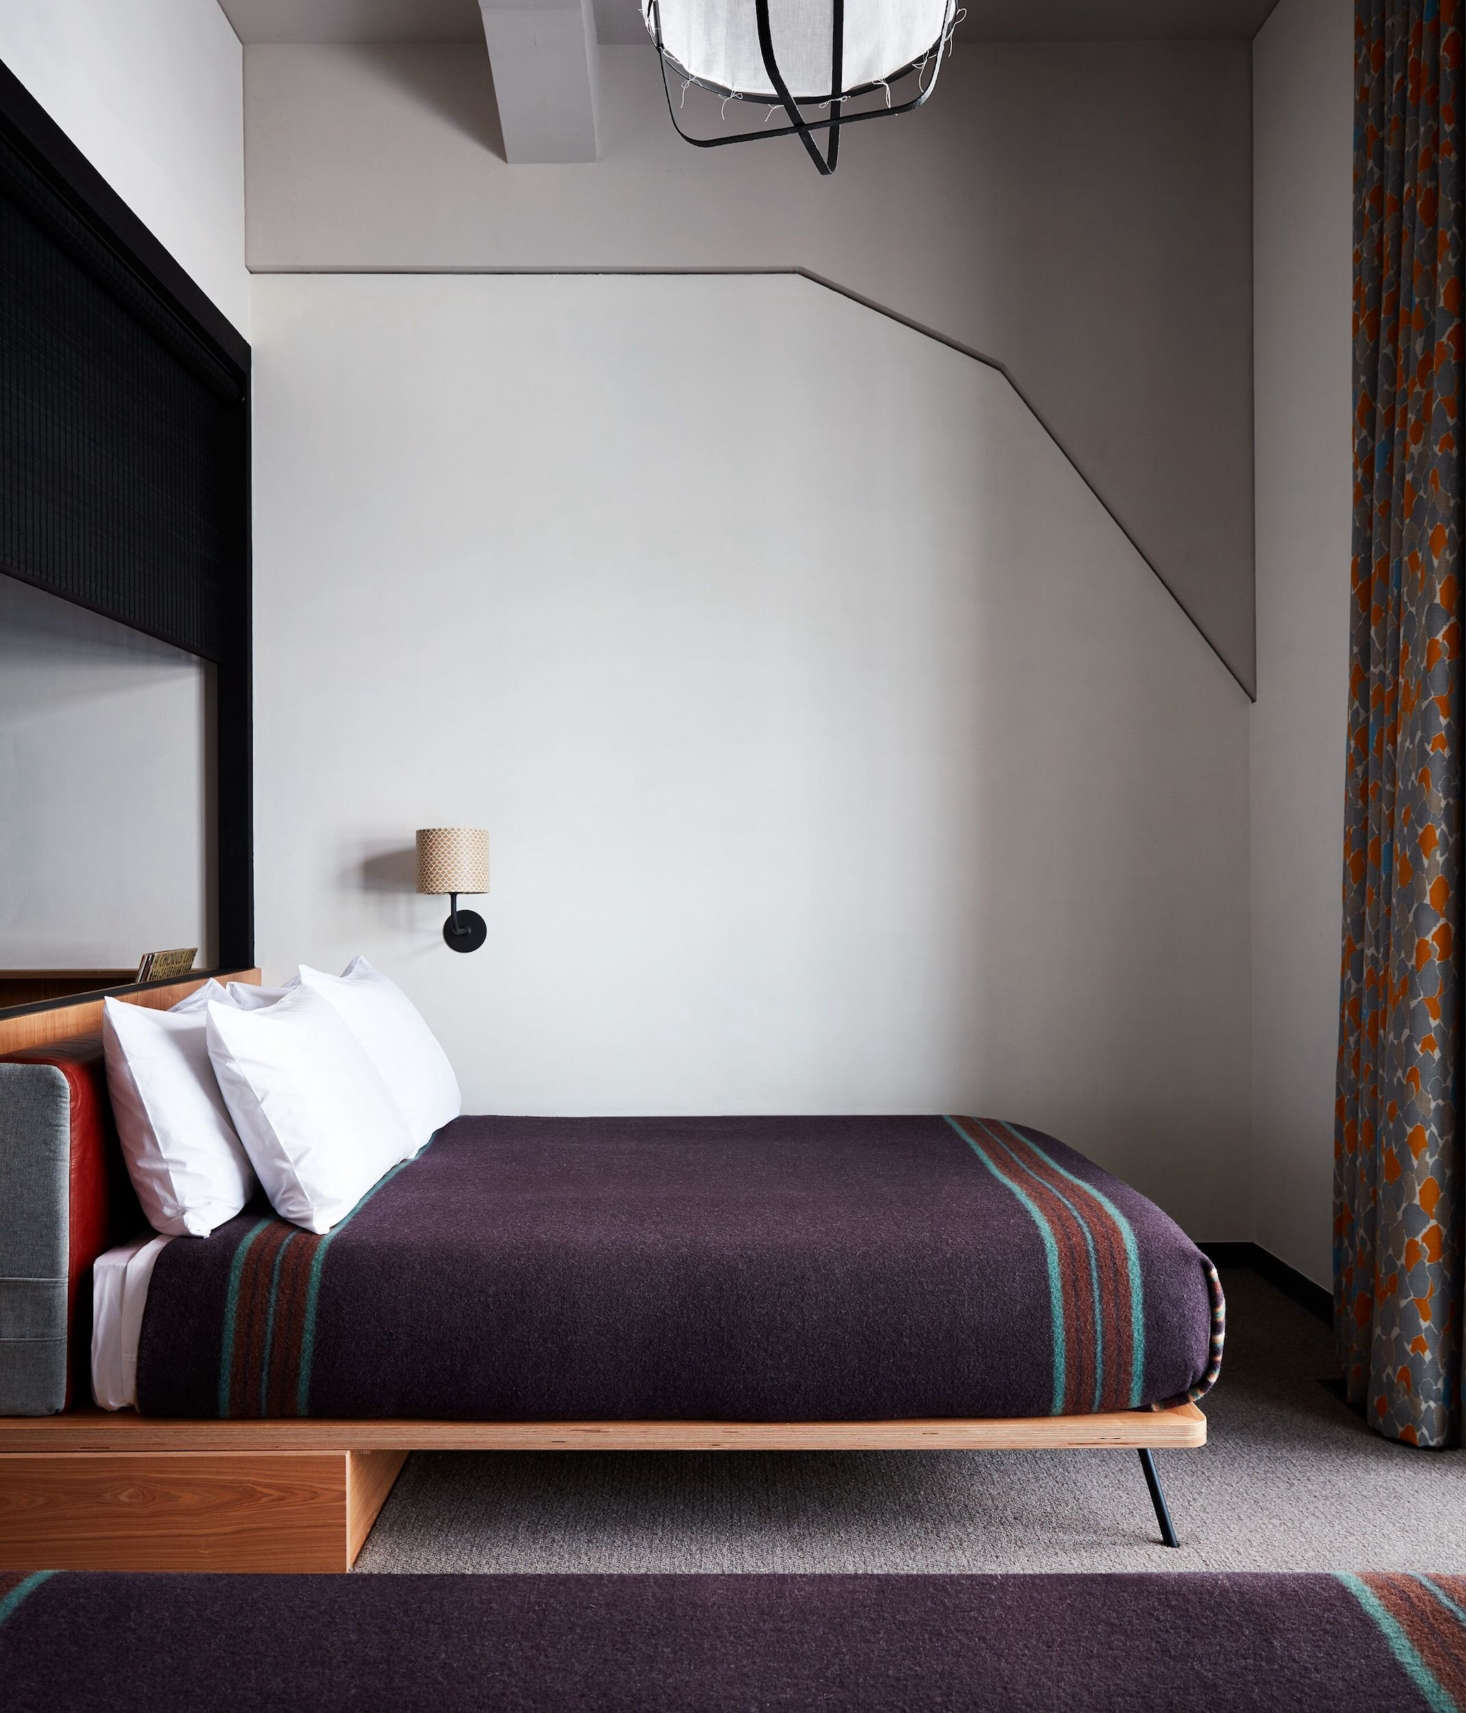 Minimalist platform beds simply covered with custom wool blankets made by Pendleton specifically for the hotel. After April , the blankets will be available for purchase in Ace&#8